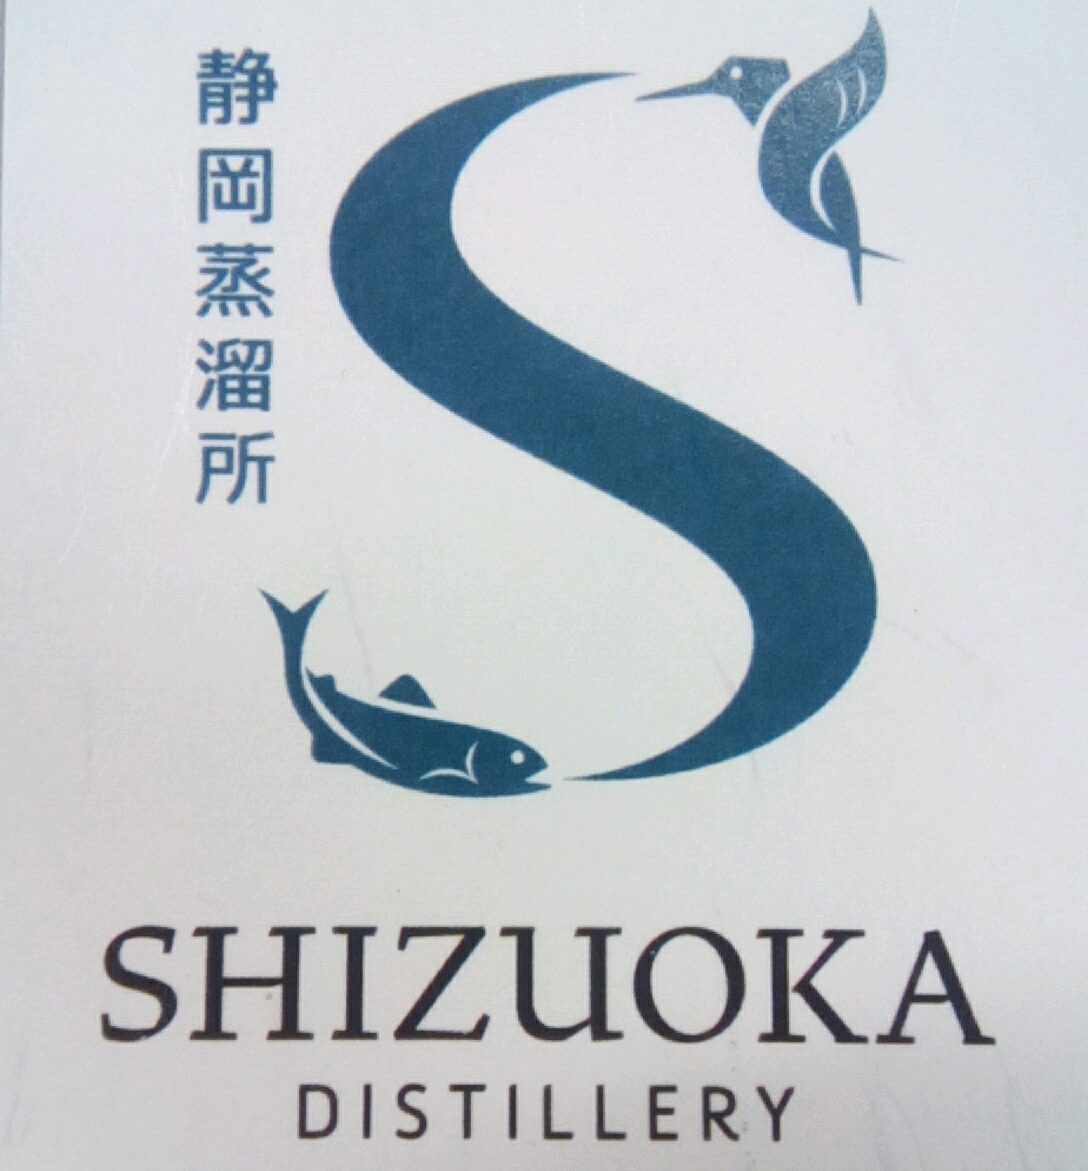 Shizuoka Distillery re-opens Premium Bottle Selection program for 2019